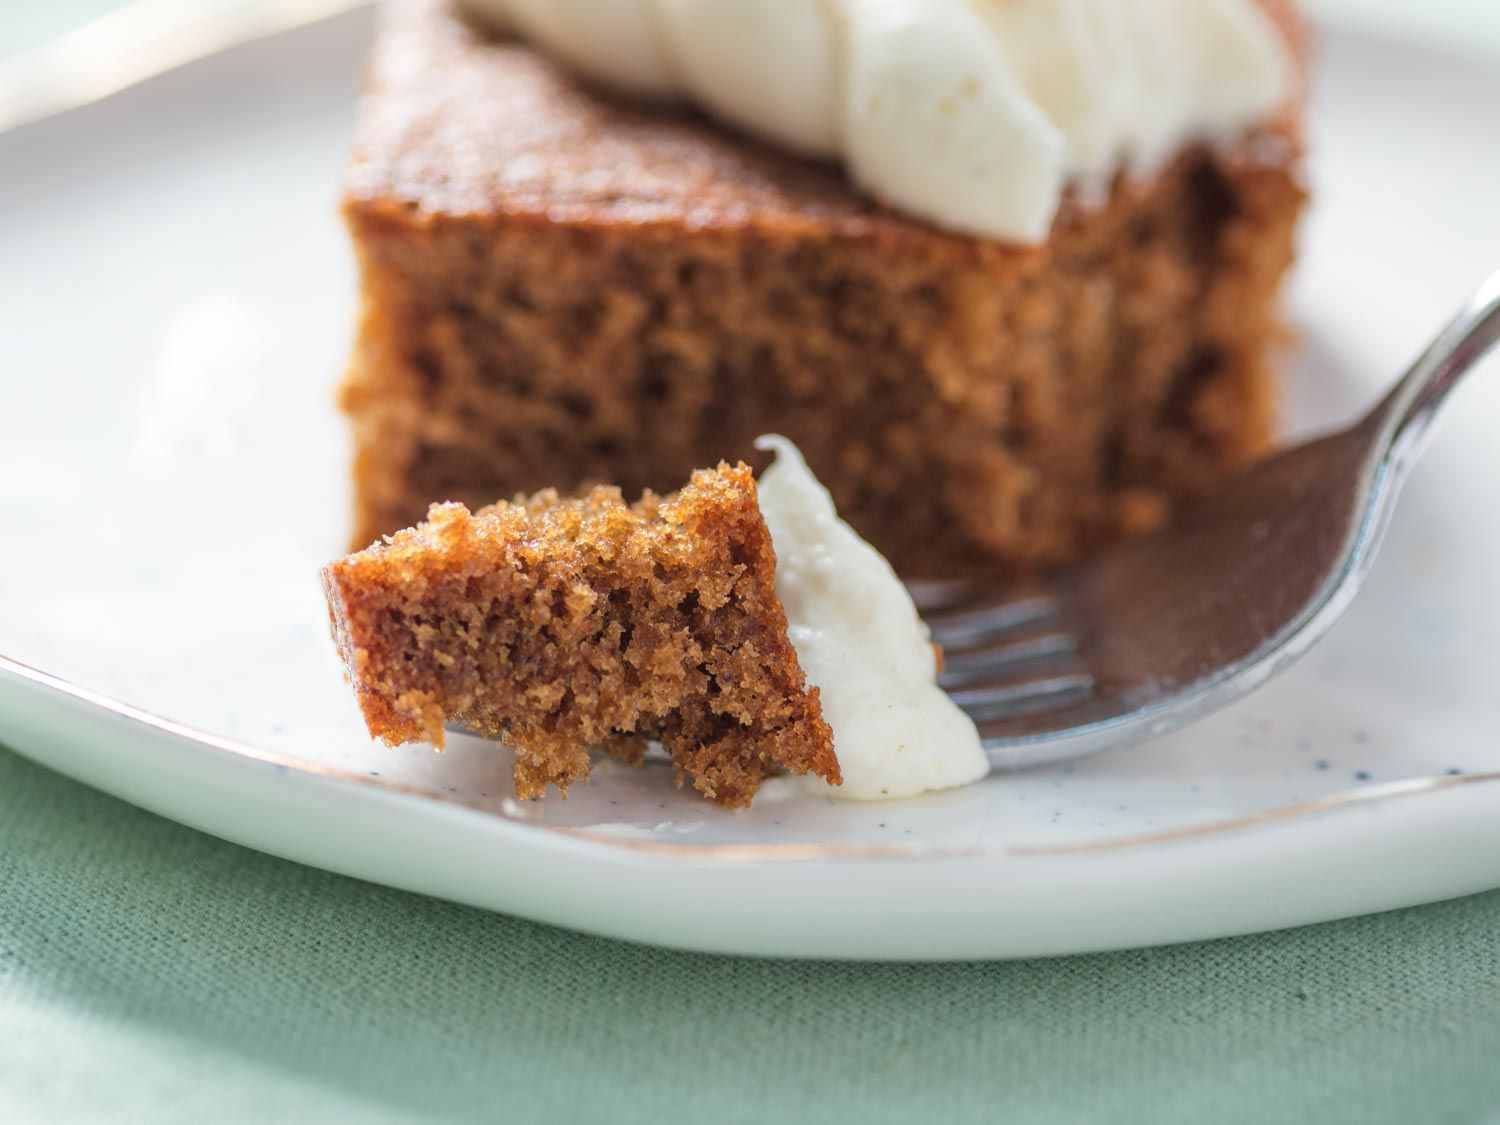 forkful of gingerbread cake and cream cheese frosting